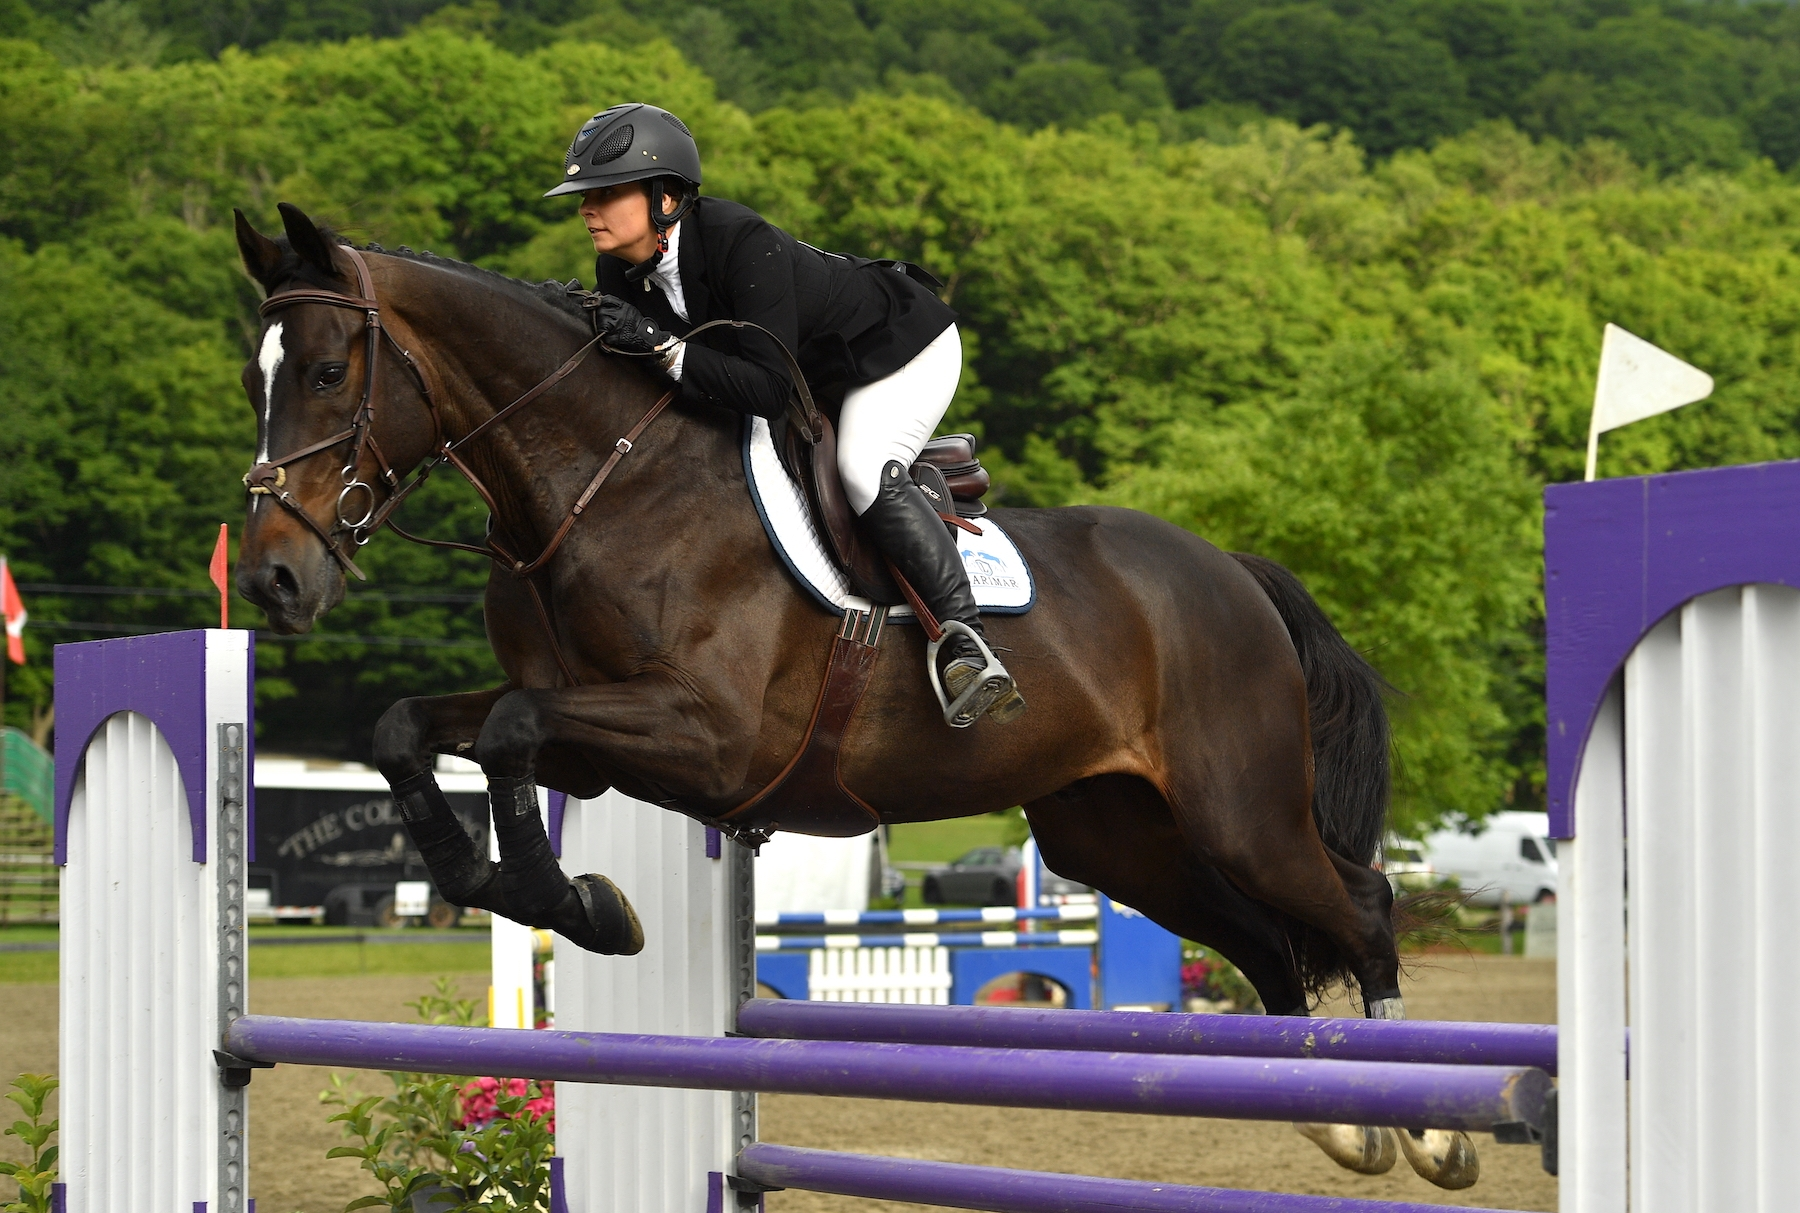 Katie Carson won the $2,500 Marshall & Sterling Adult Amateur Jumper Classic riding Aburhal on Sunday, July 14, at the Vermont Summer Festival in East Dorset, VT.<br><b>Photo by <a href='https://www.andrewryback.com/' target='_blank'>Andrew Ryback Photography</a></b>